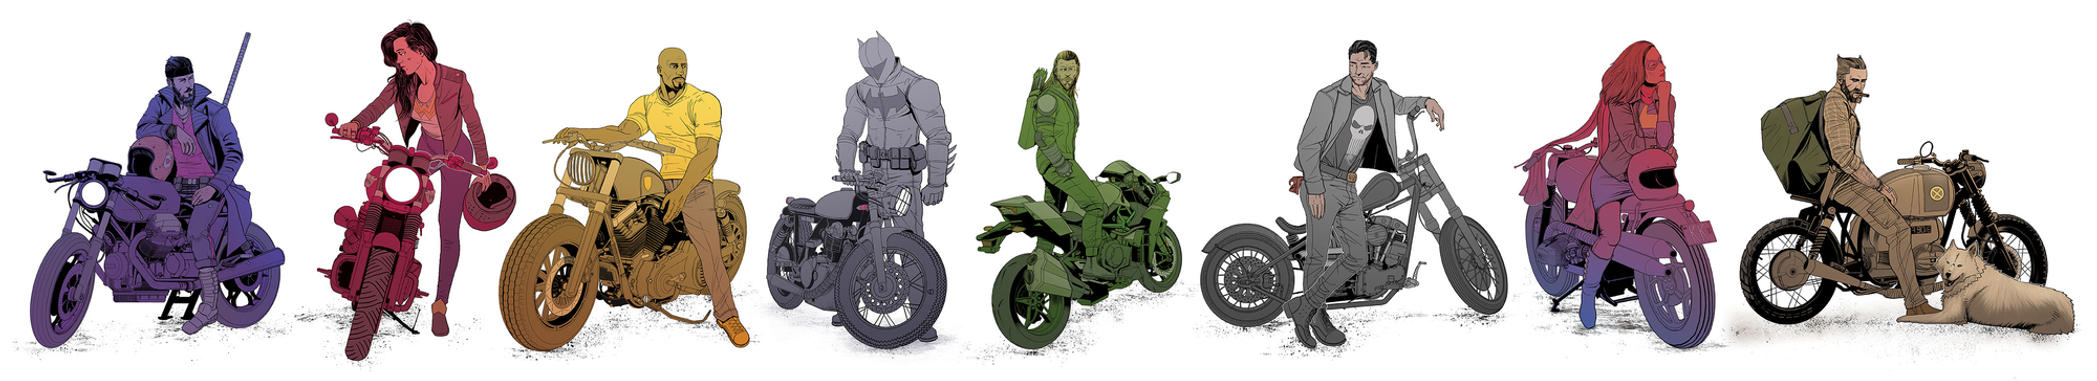 Superbikes by BenBrush